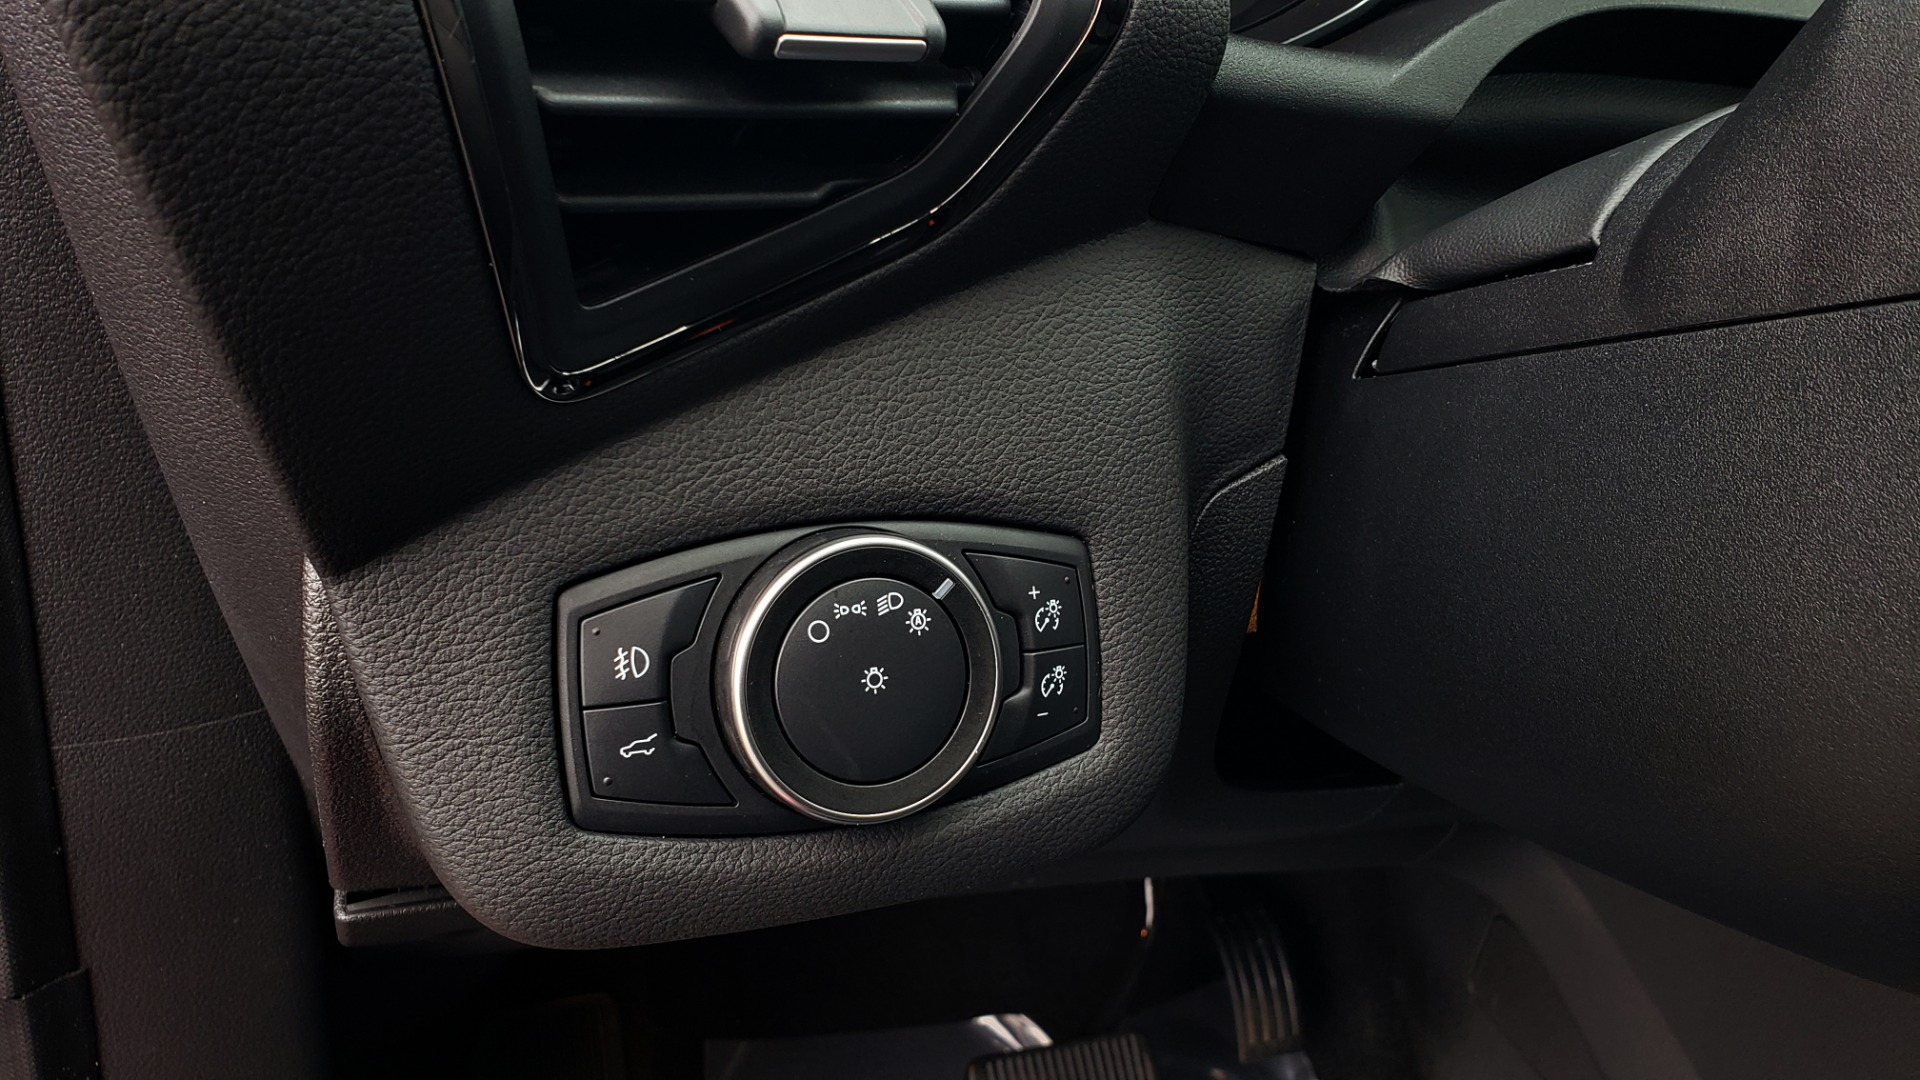 Used 2018 Ford ESCAPE SEL / FWD / 1.5L ECOBOOST / PANO-ROOF / REARVIEW for sale Sold at Formula Imports in Charlotte NC 28227 40